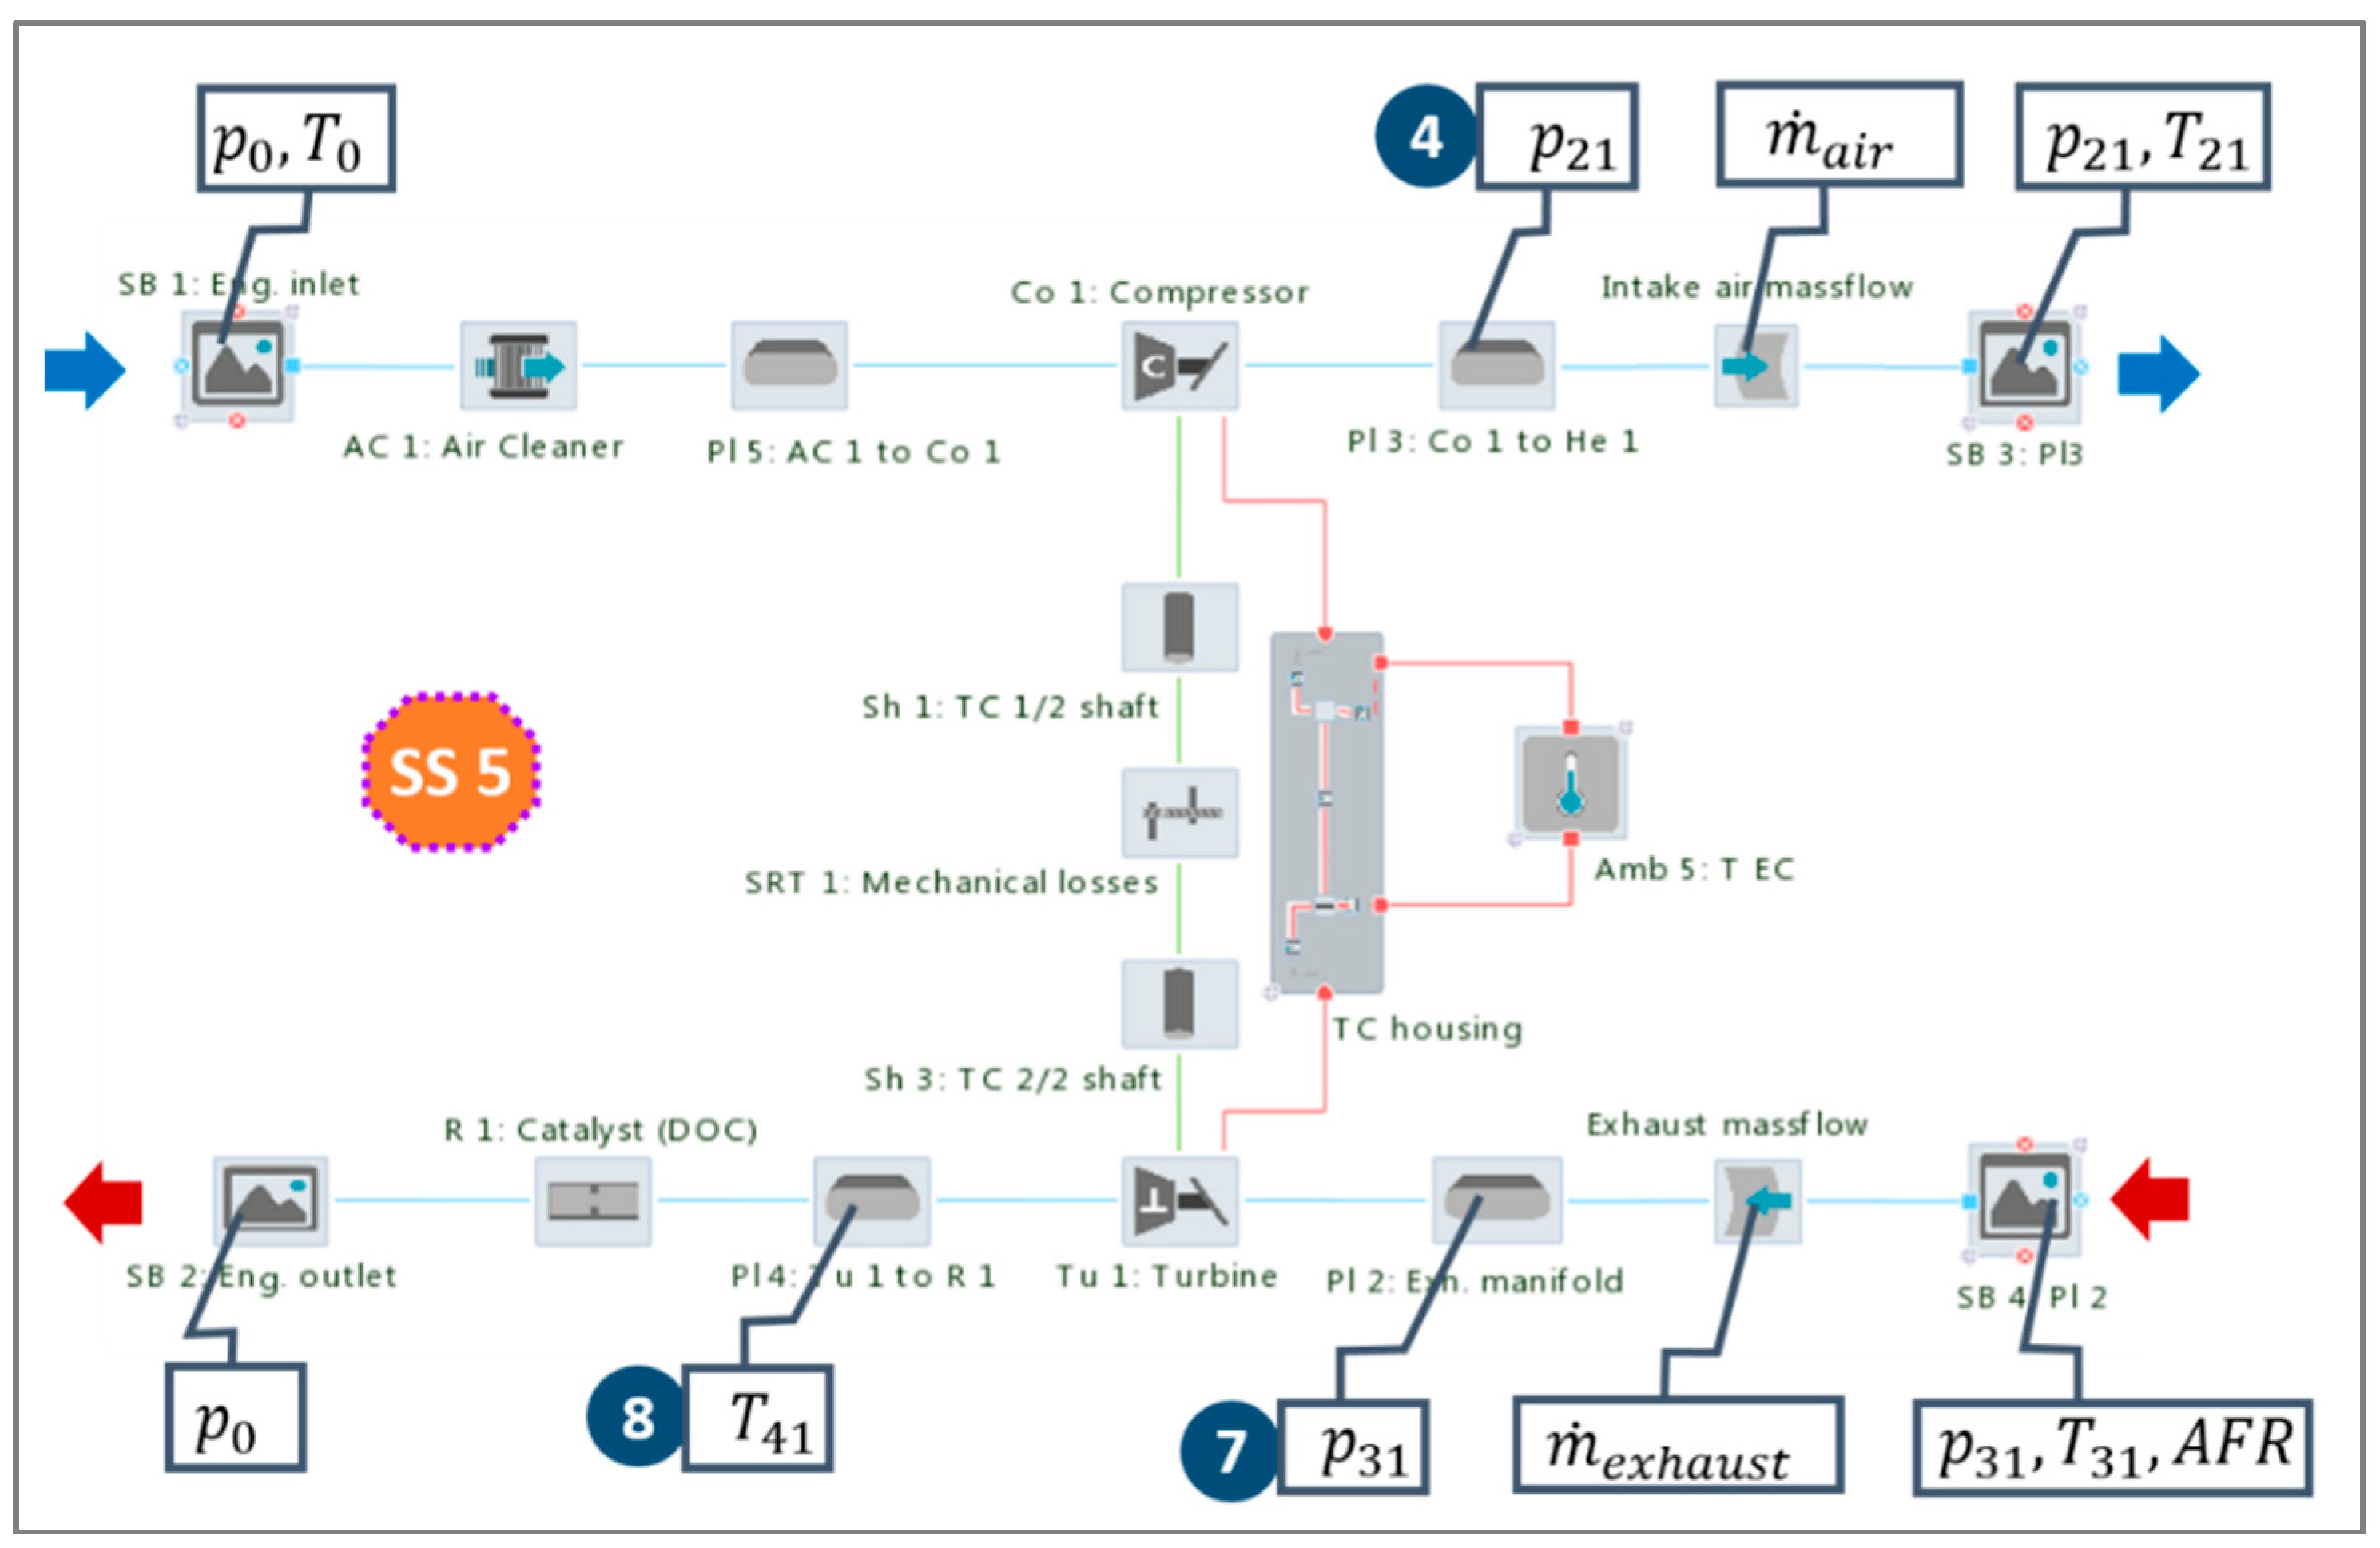 Turbo Charger Diagram Energies Free Full Text Of Turbo Charger Diagram